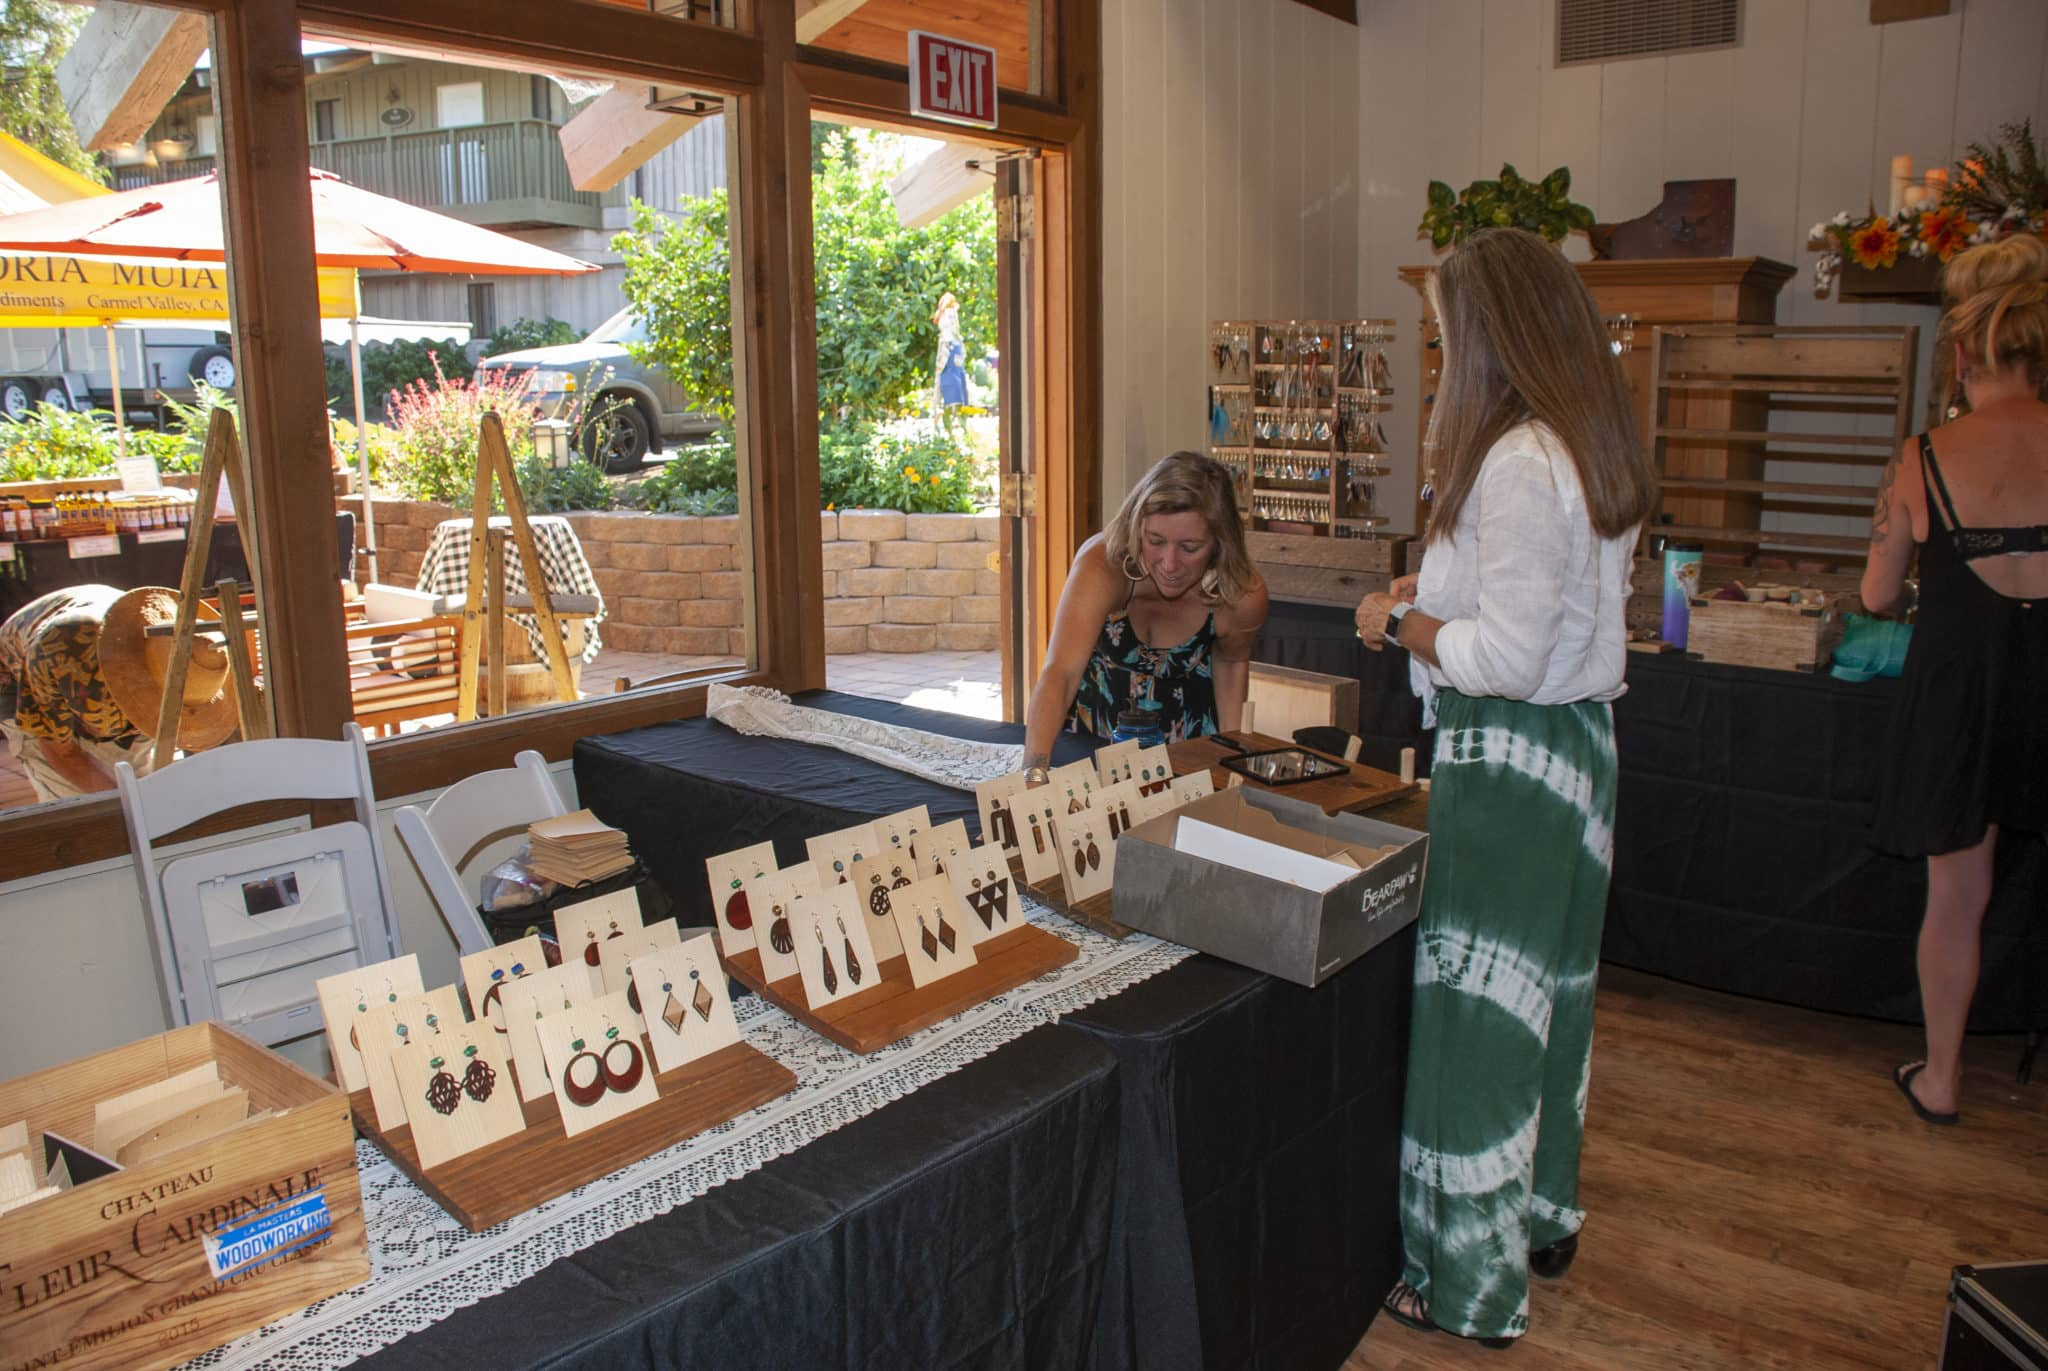 A table display with earrings on tan cardboard for sale in front of a large window and two women near the end of the table.